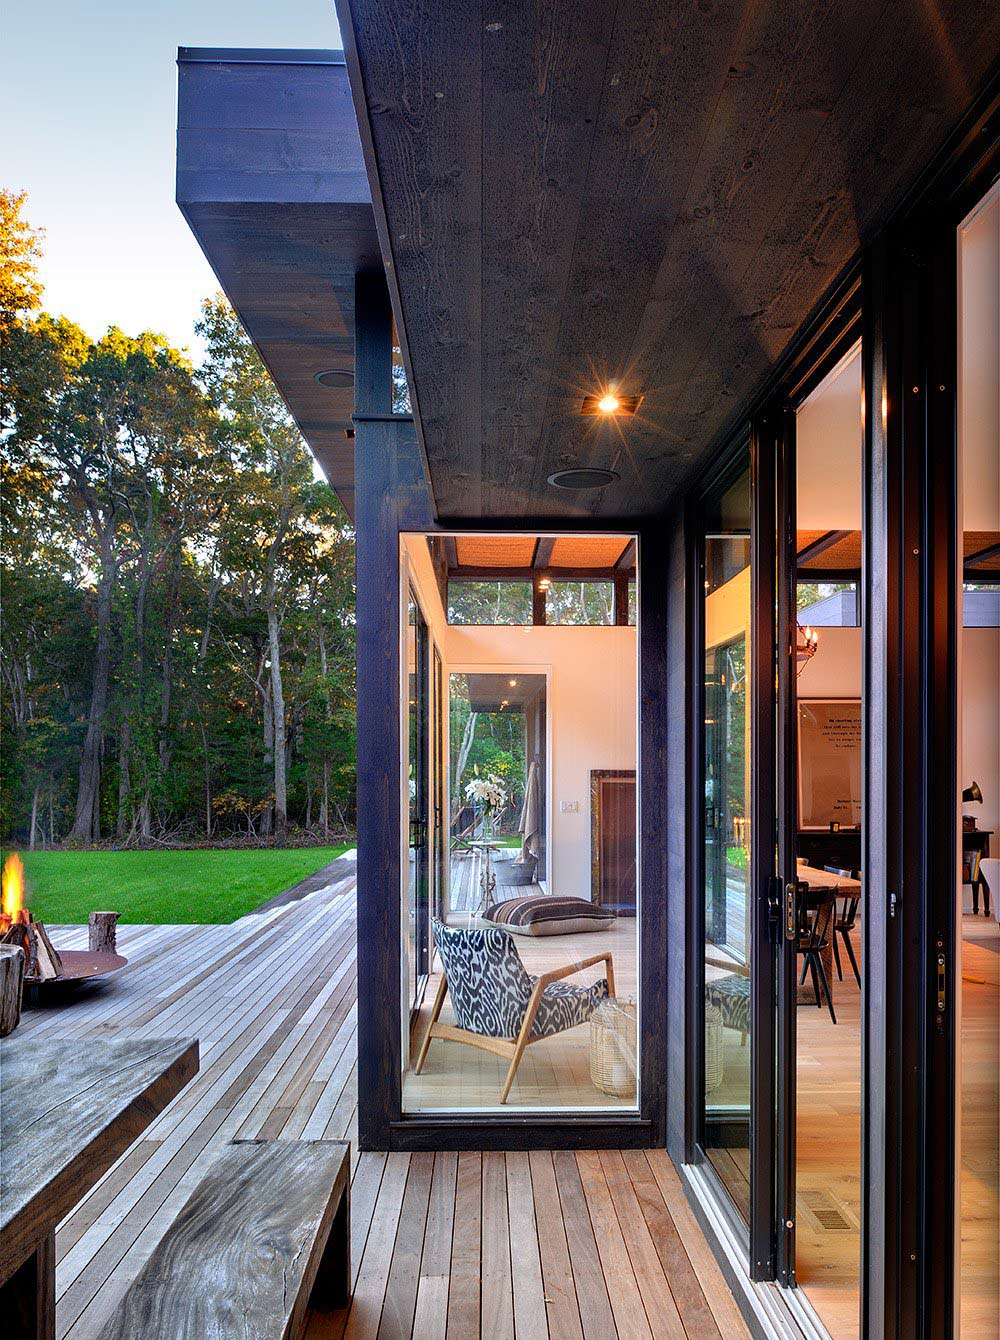 Fire Pit, Wooden Decking, Robins Way Residence in Amagasett, New York by Bates Masi Architects